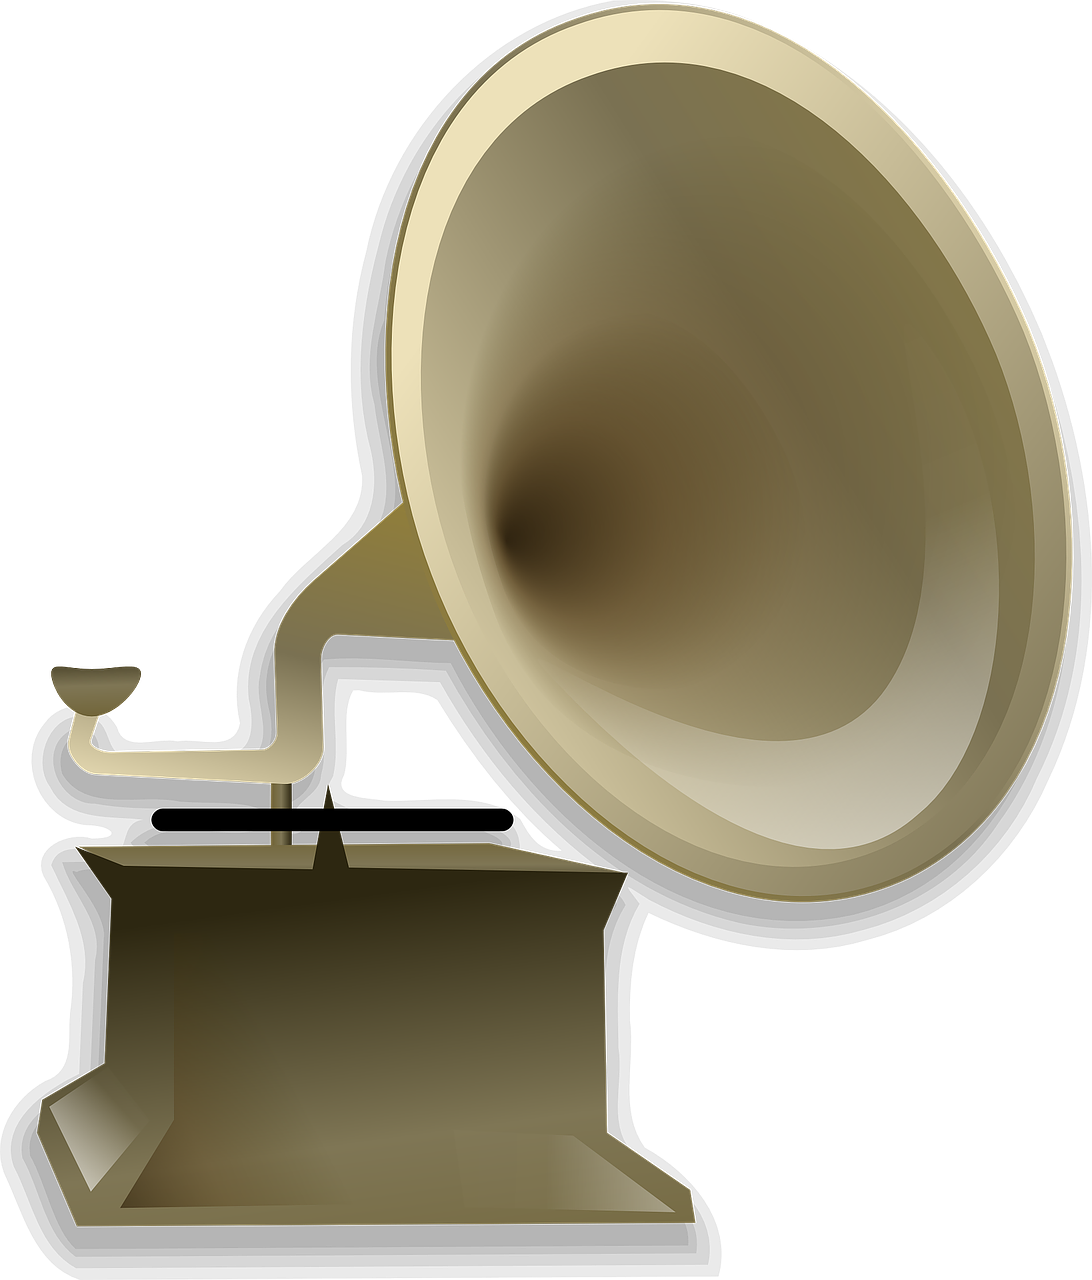 gramophone music antique free picture